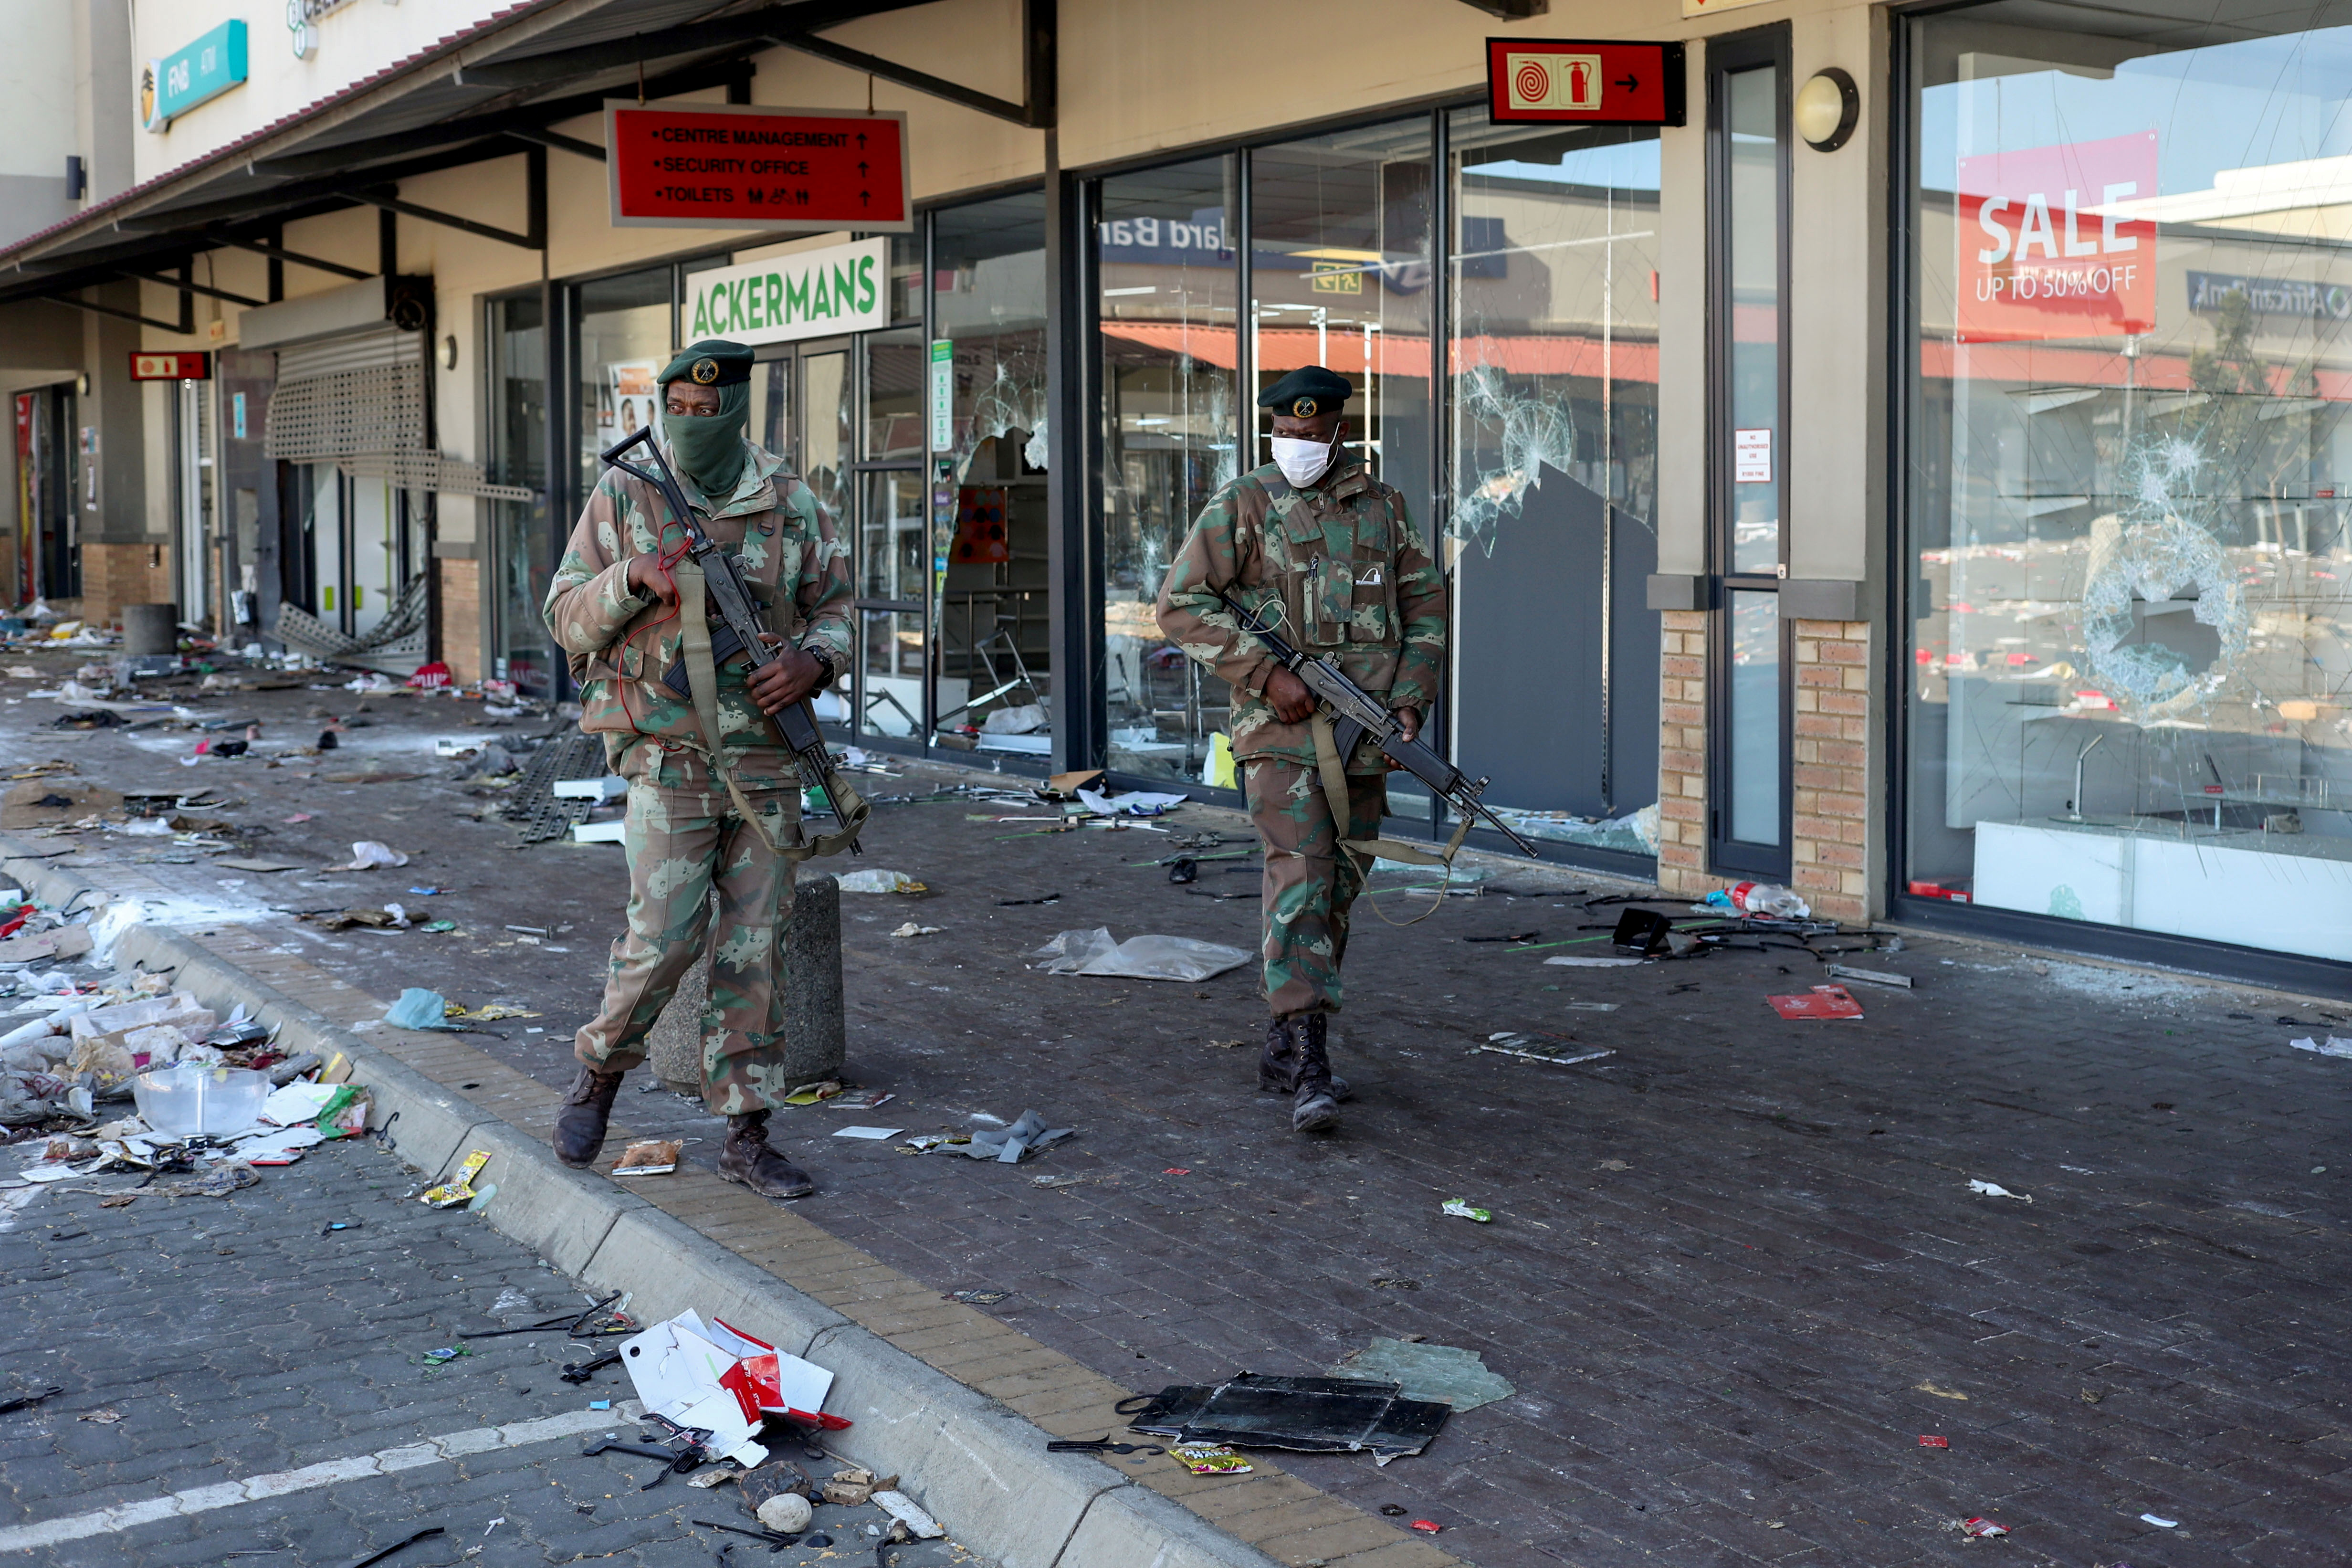 Members of the military patrol past looted shops as the country deploys army to quell unrest linked to jailing of former President Jacob Zuma, in Soweto, South Africa, July 13, 2021. REUTERS/Siphiwe Sibeko     TPX IMAGES OF THE DAY